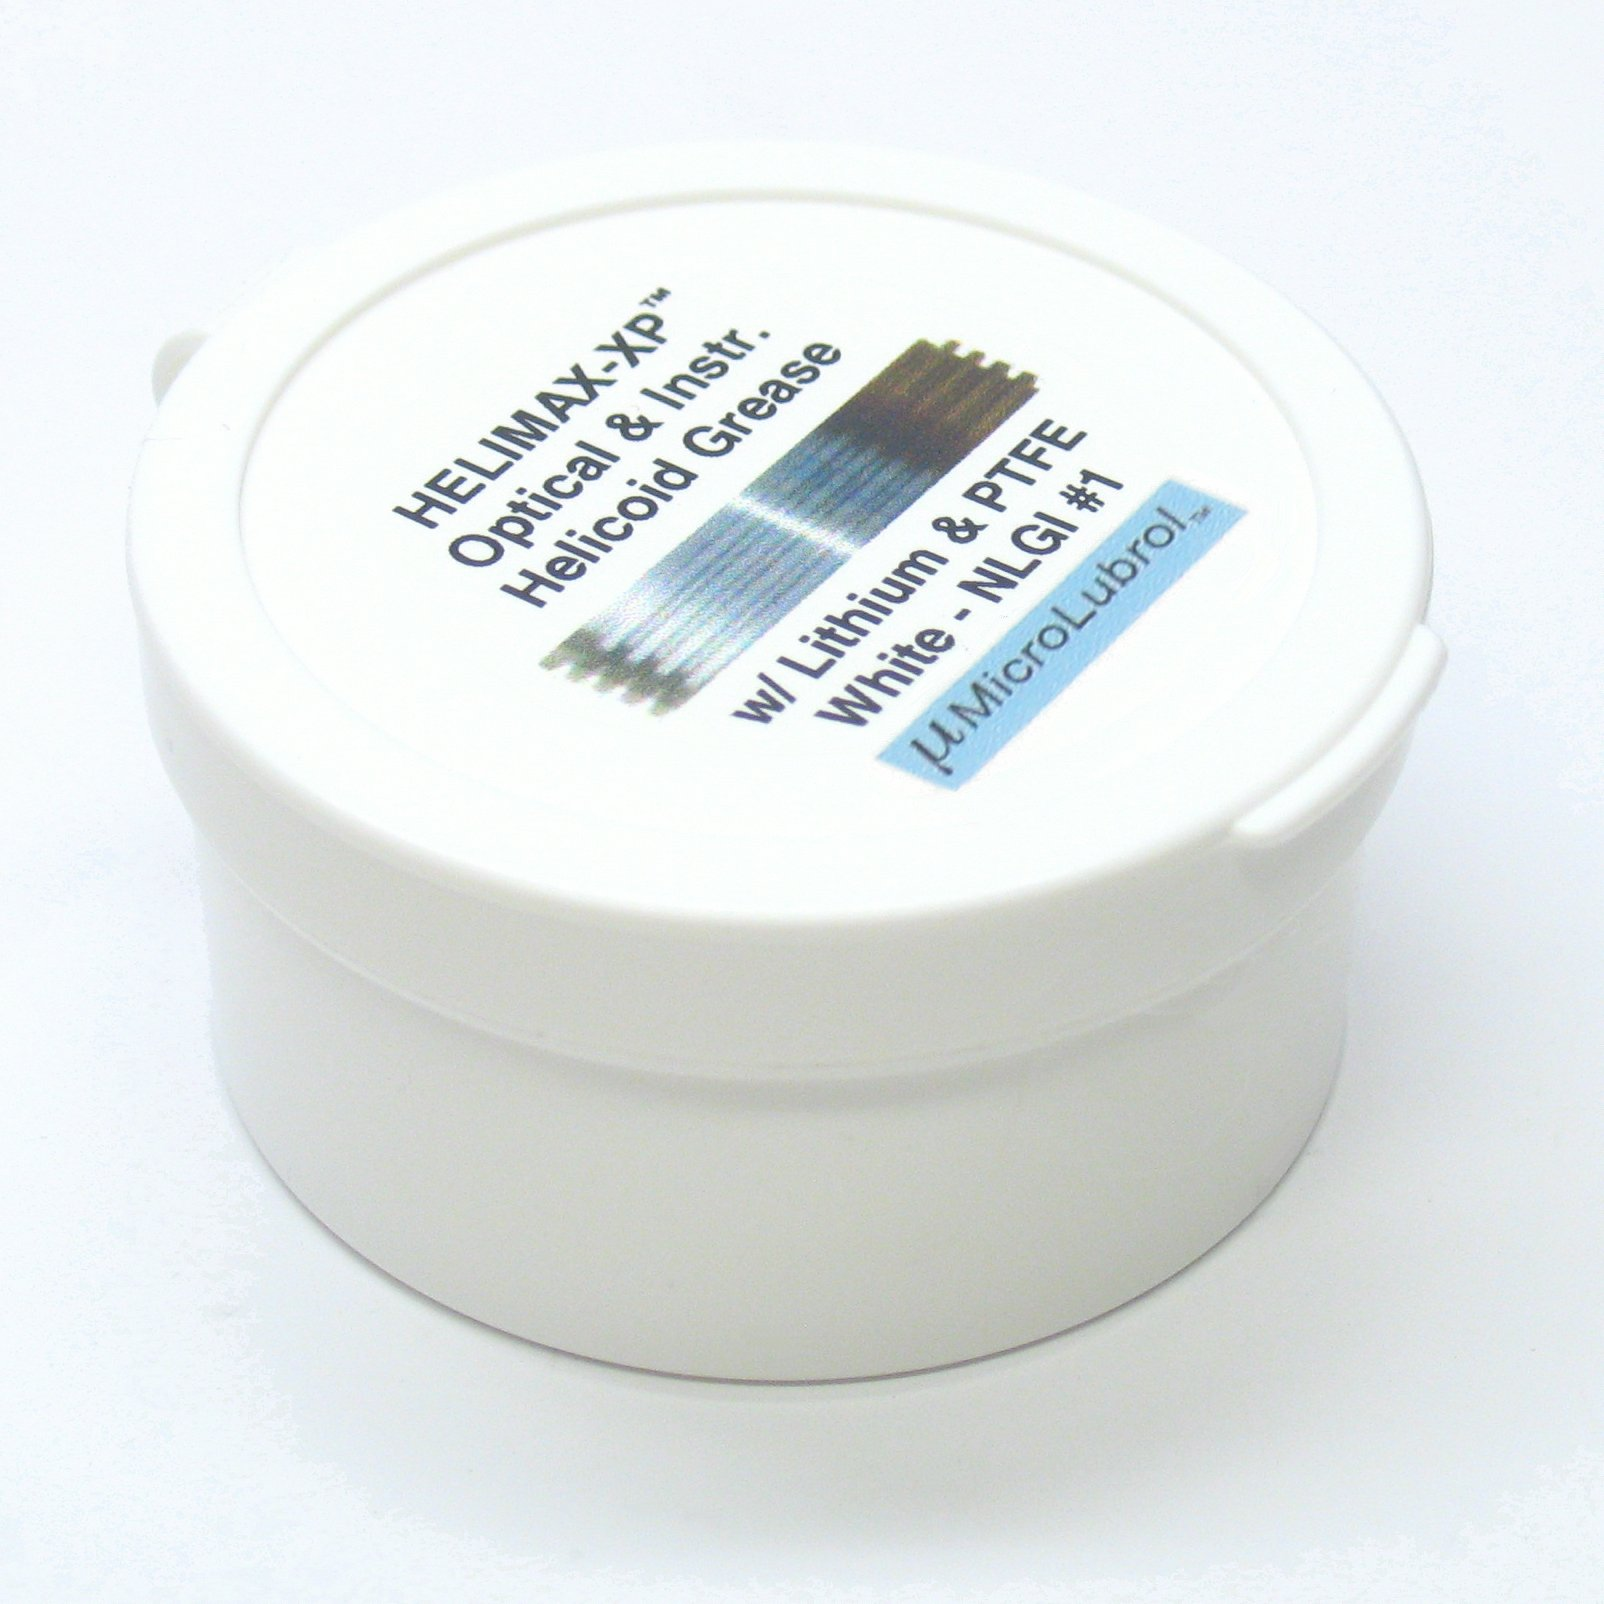 MicroLubrol Helimax-XP Camera Telescope Optical Instrument Focusing Helicoid Grease w/PTFE 1oz 28g